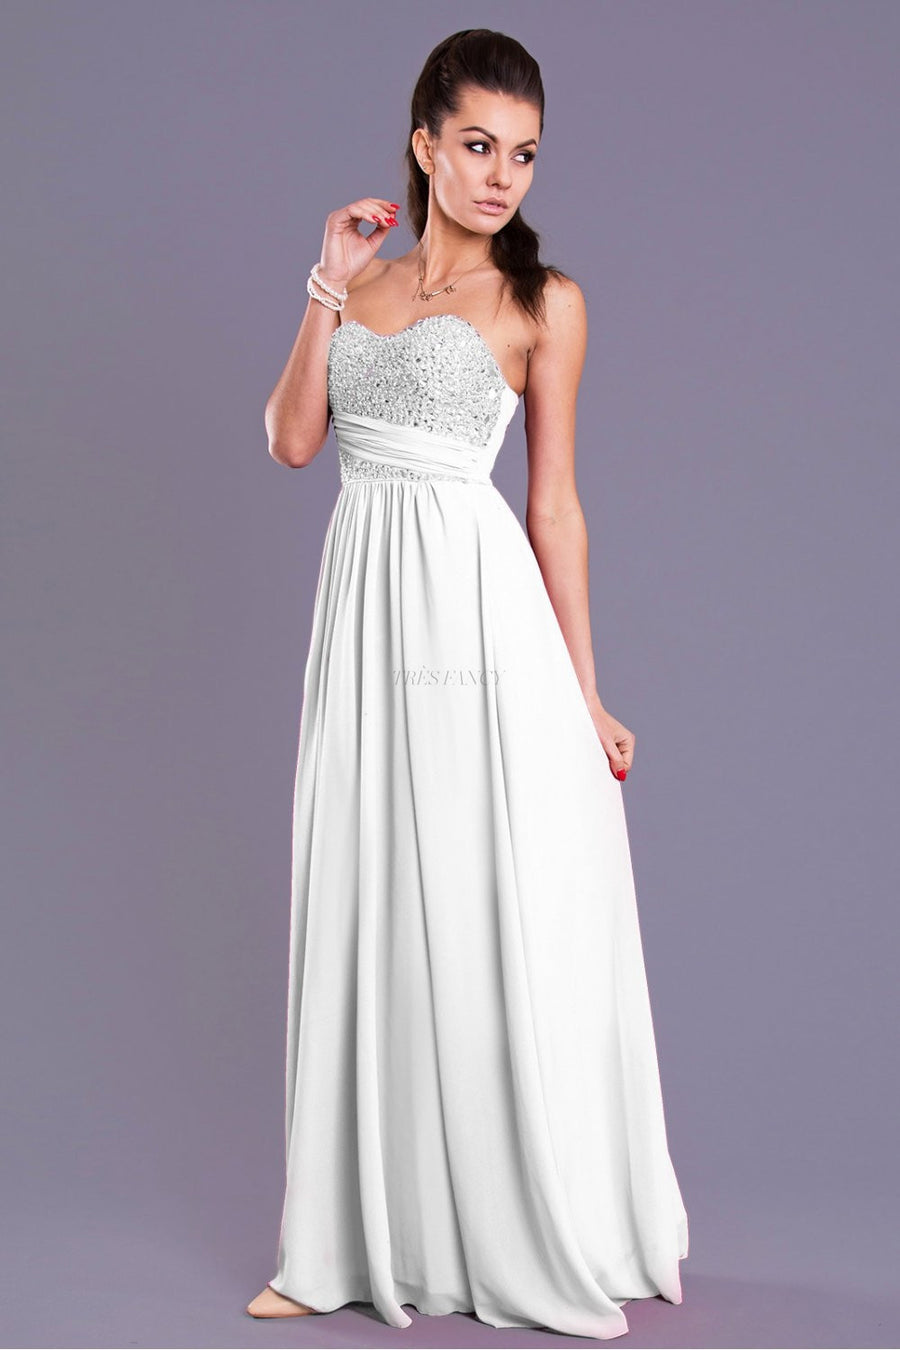 Evening dress 40853 YourNewStyle-Evening Dresses-YourNewStyle-white-L-Très Fancy